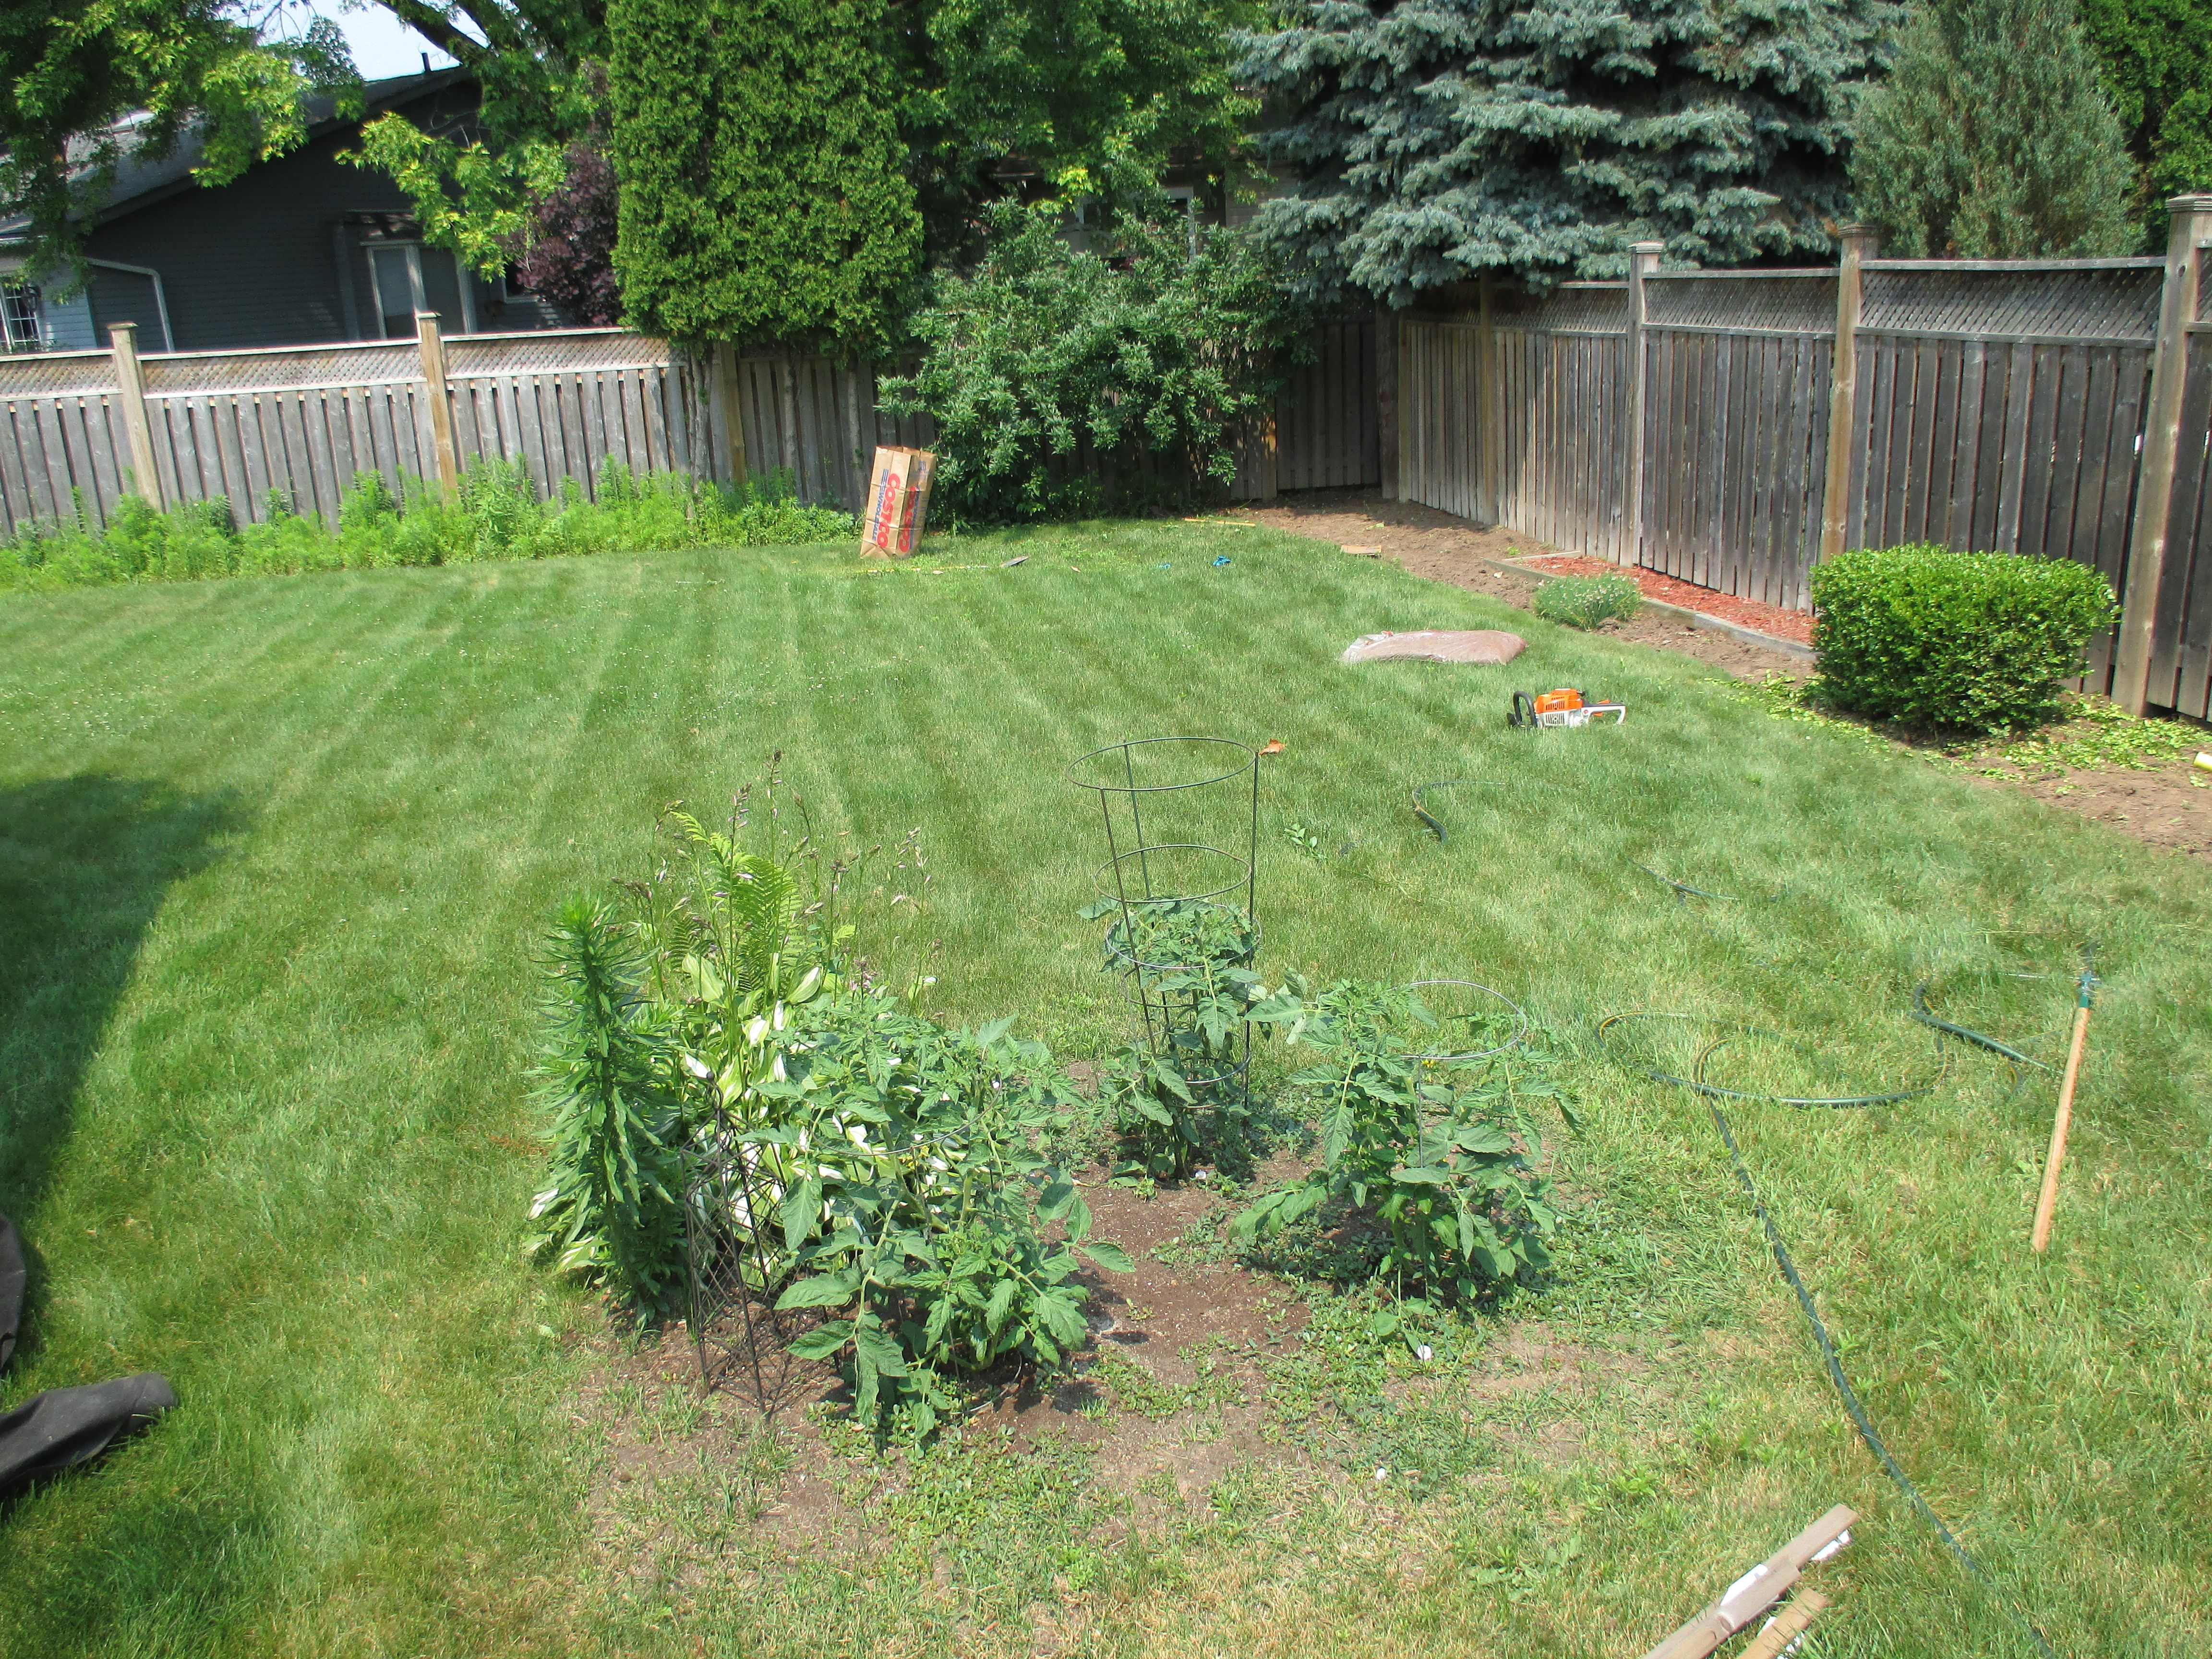 Gardens In Need Of Weeding And Mulch